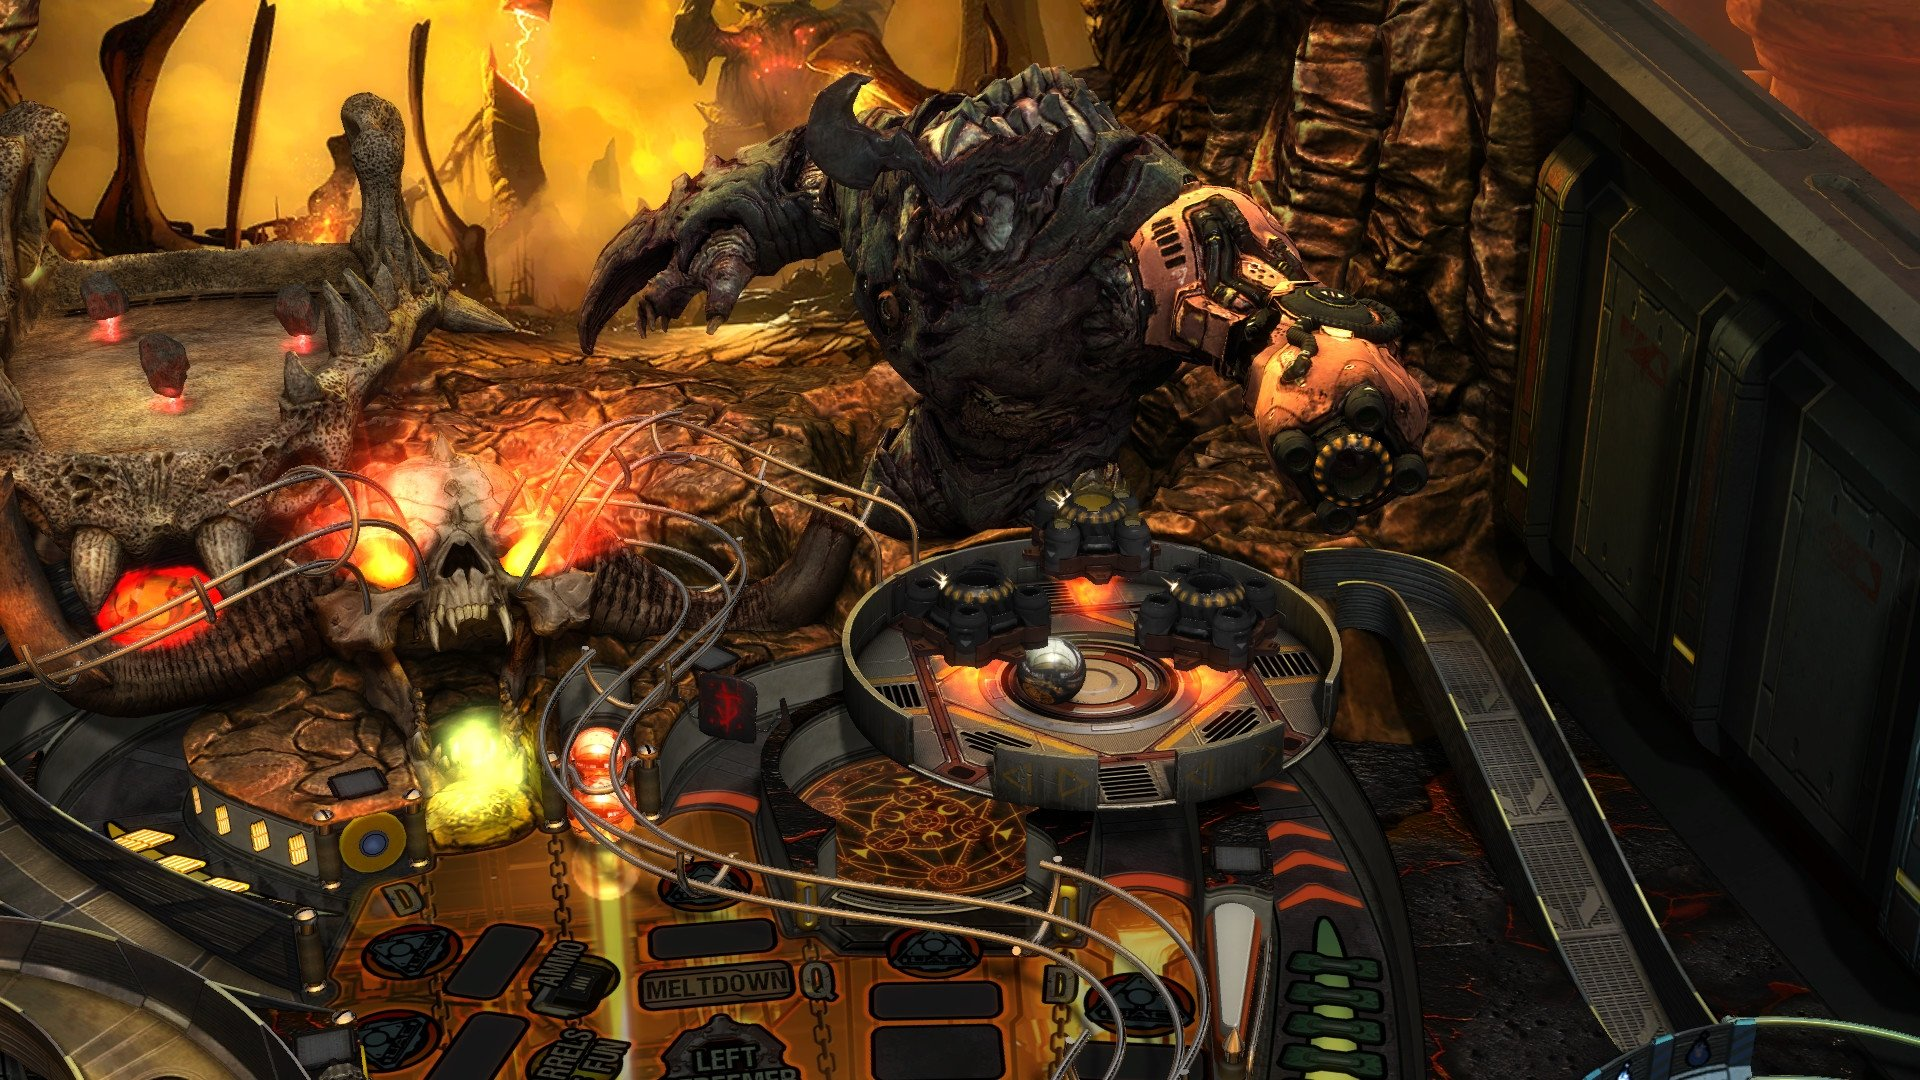 Bethesda Pinball - Download for PC Free